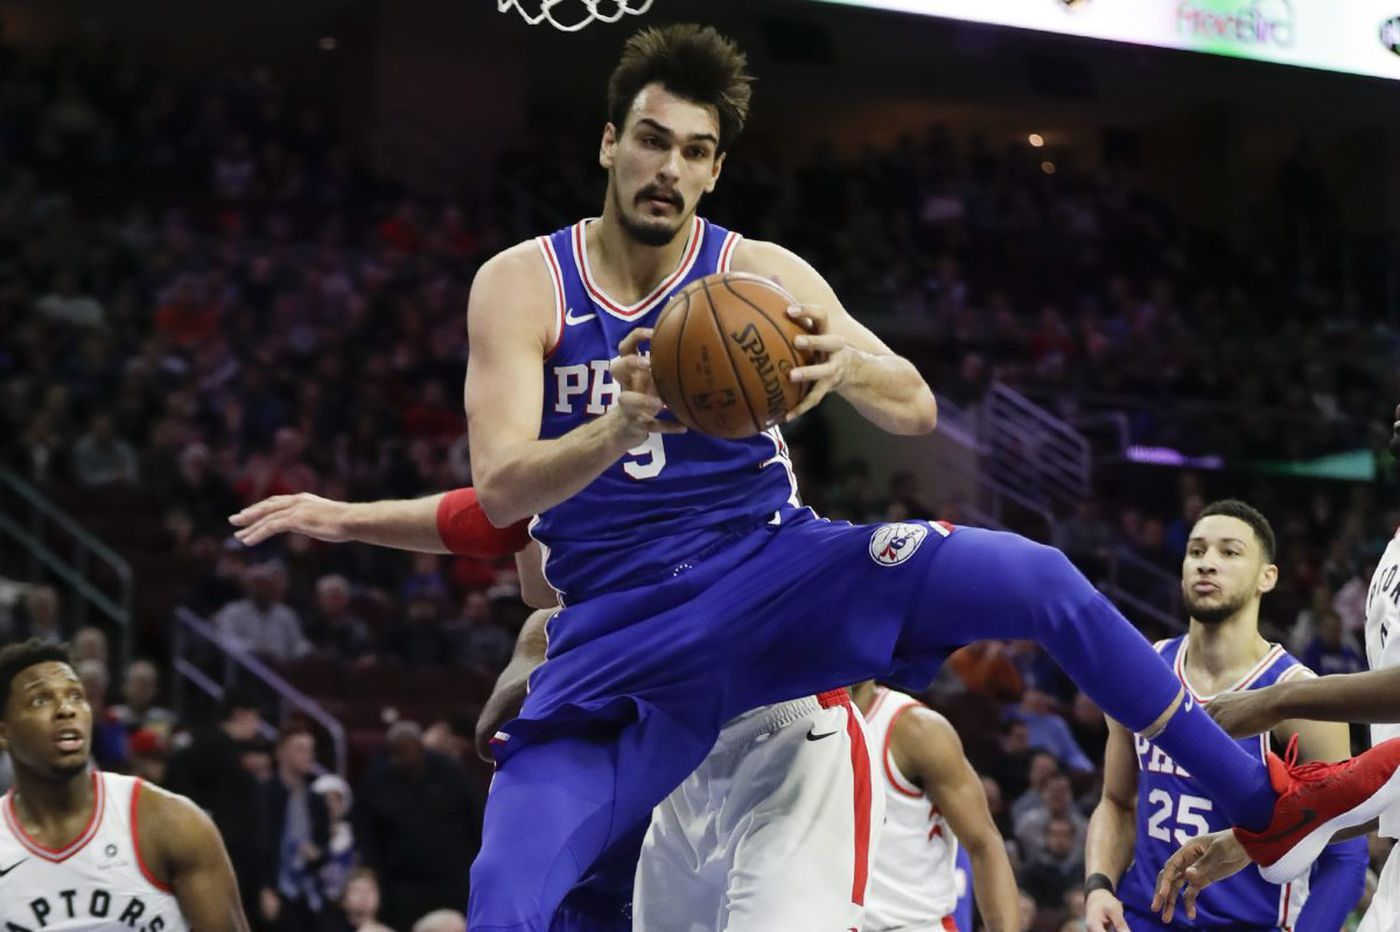 Sixers-Raptors: DeMar DeRozan goes off for 45, Dario Saric proves his mettle, and other quick thoughts from a 114-109 loss